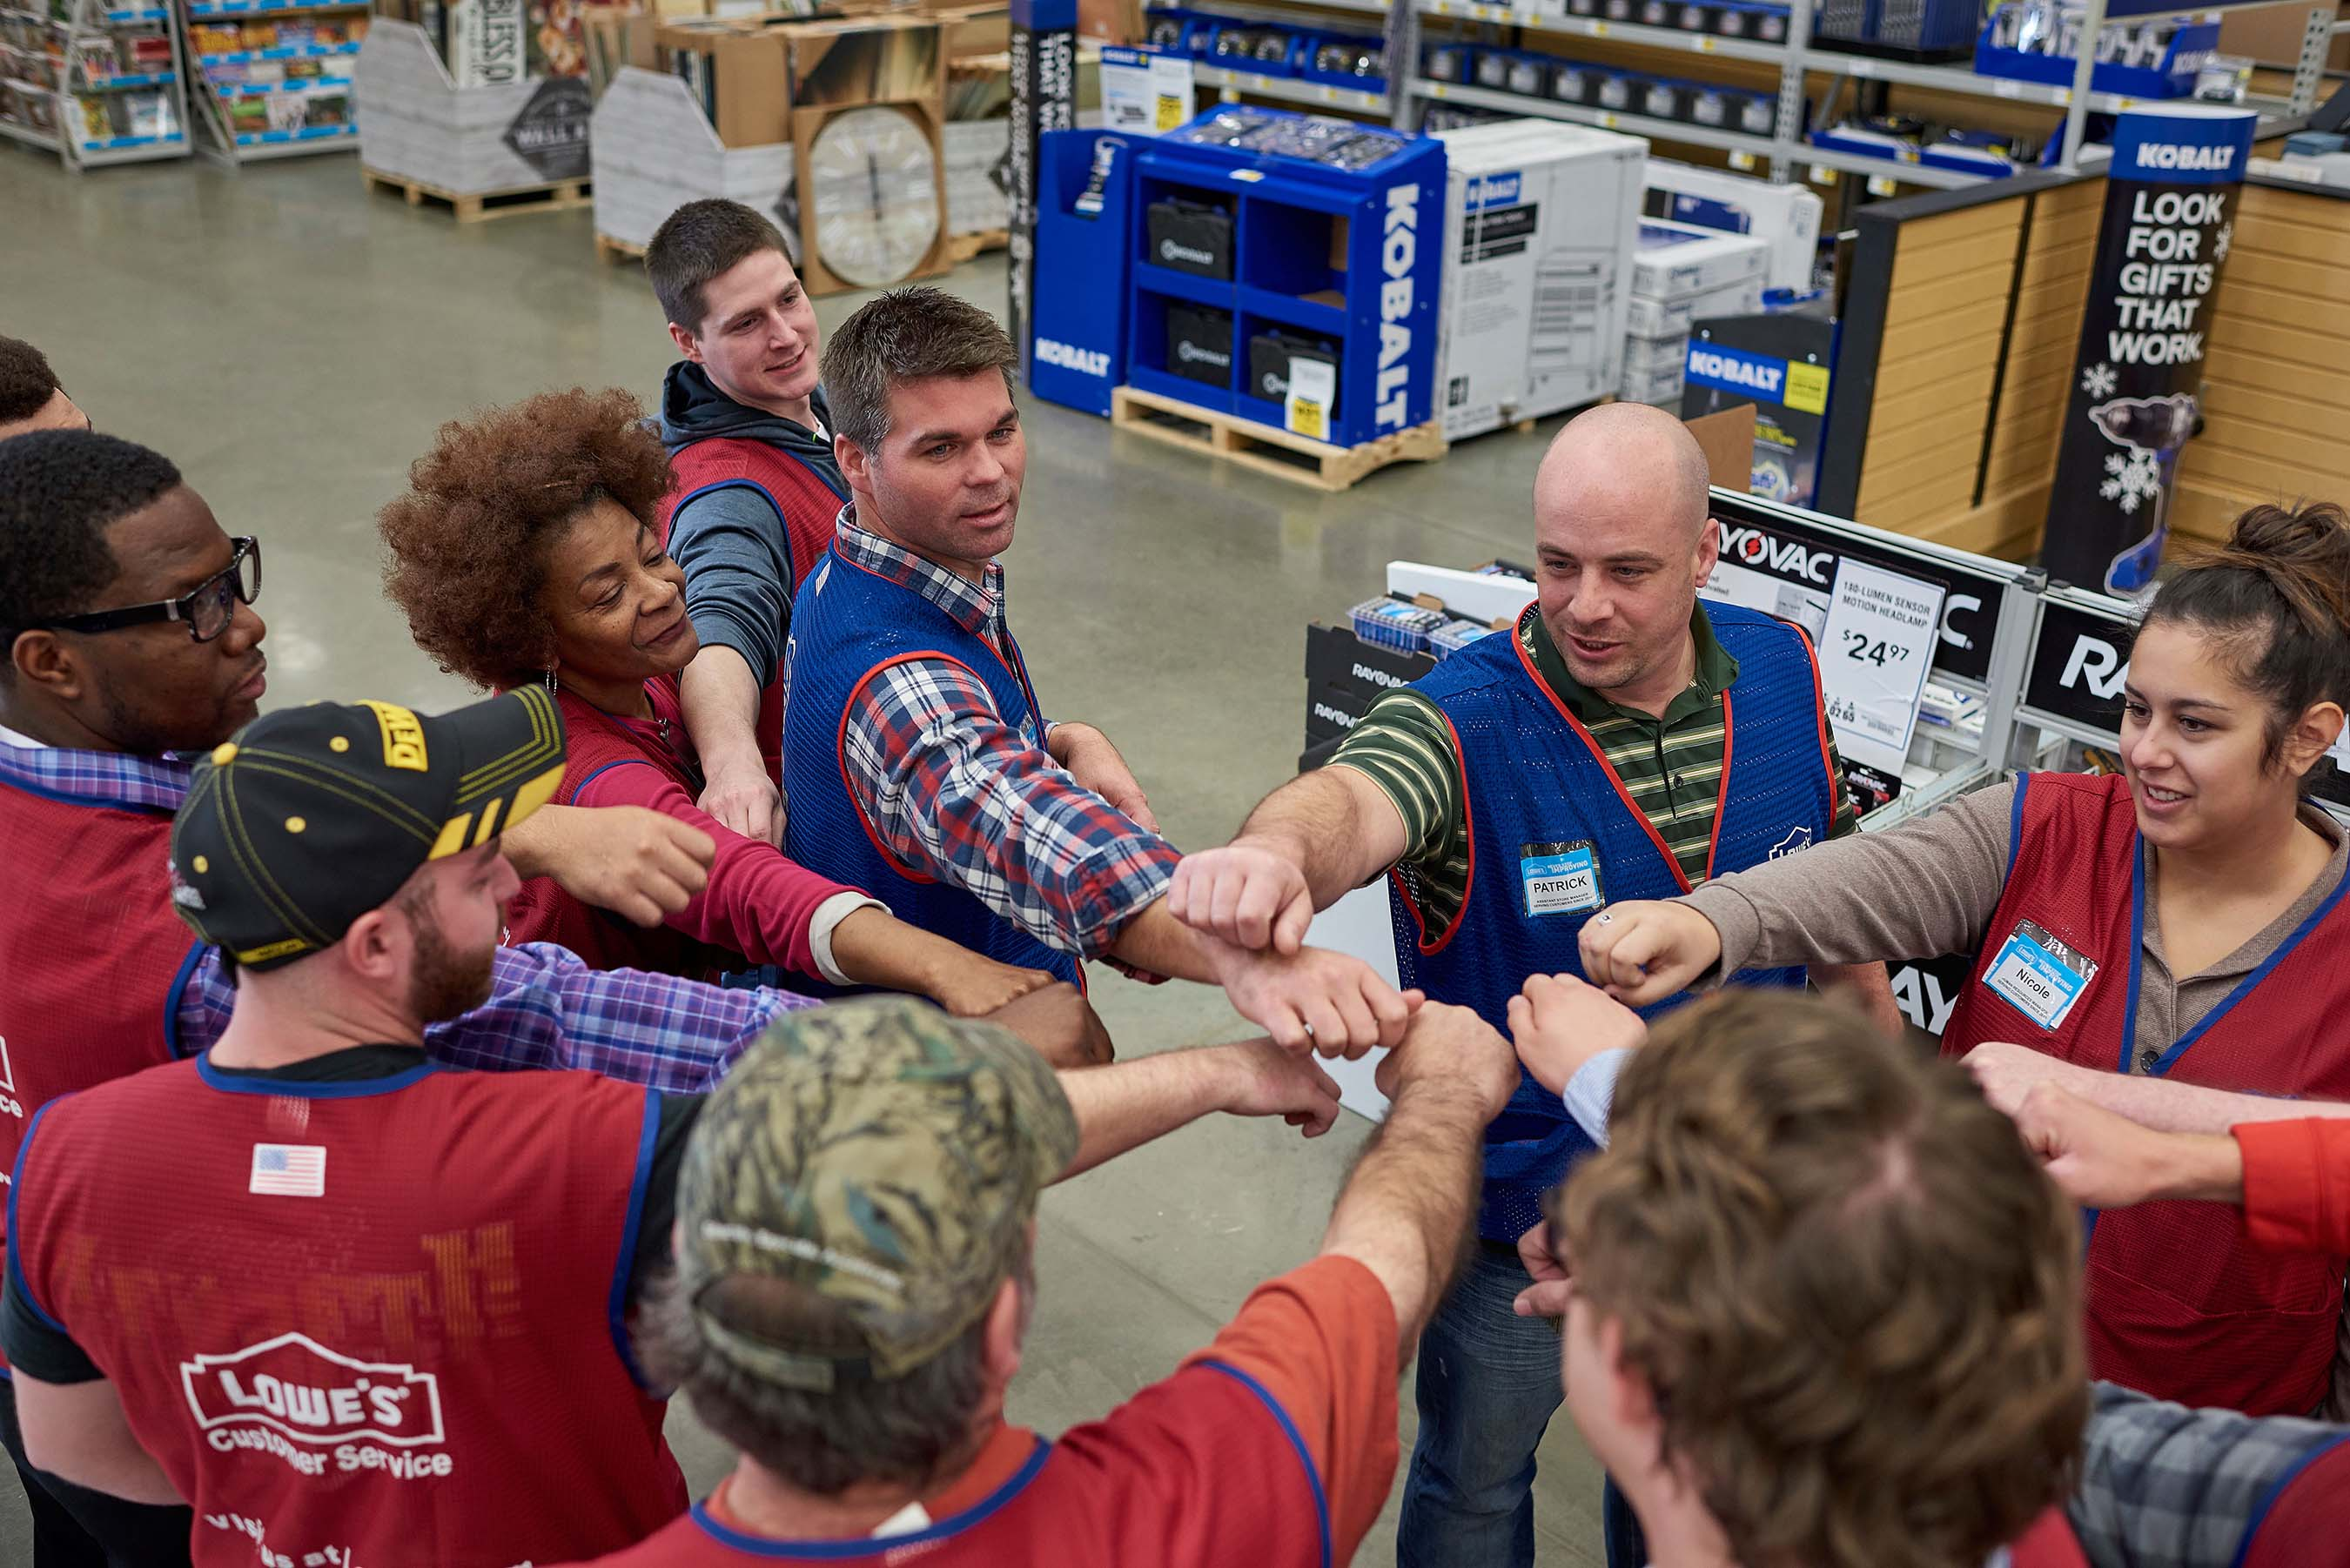 As a purpose-driven home improvement company, Lowe's and its more than 290,000 employees take pride in helping people love where they live.